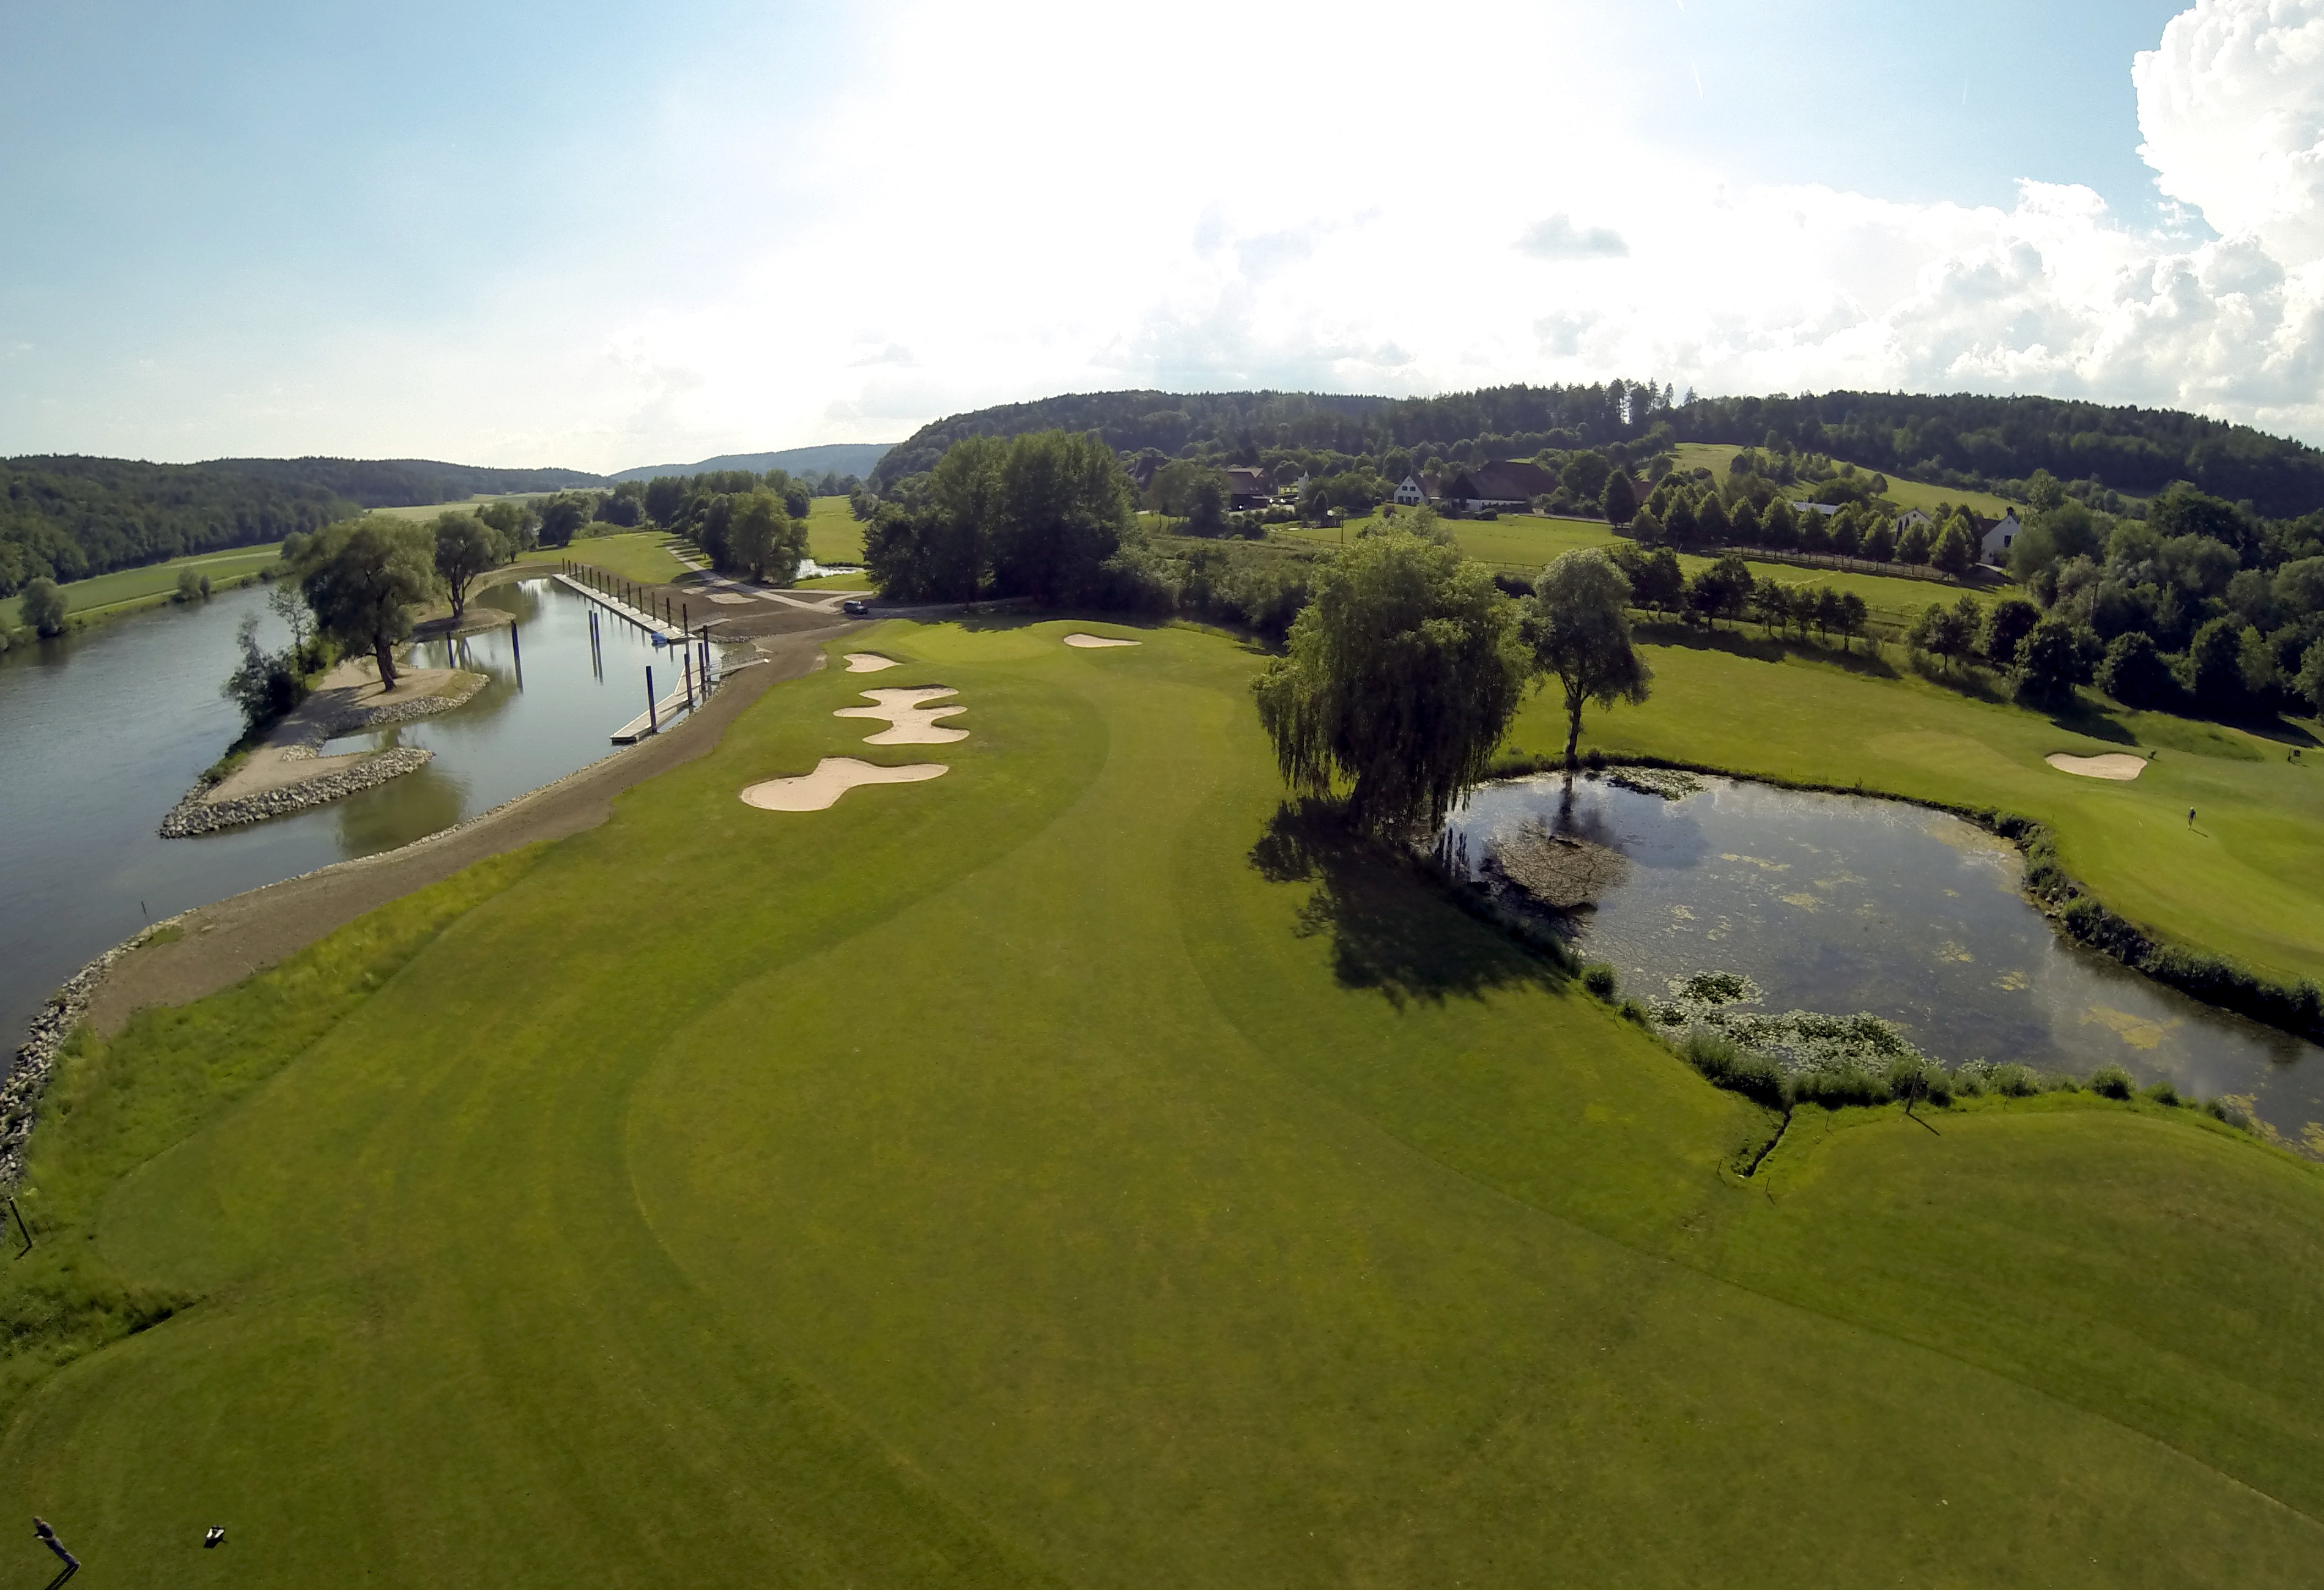 Overview of golf course named Gut Minoritenhof Golf and Country Club